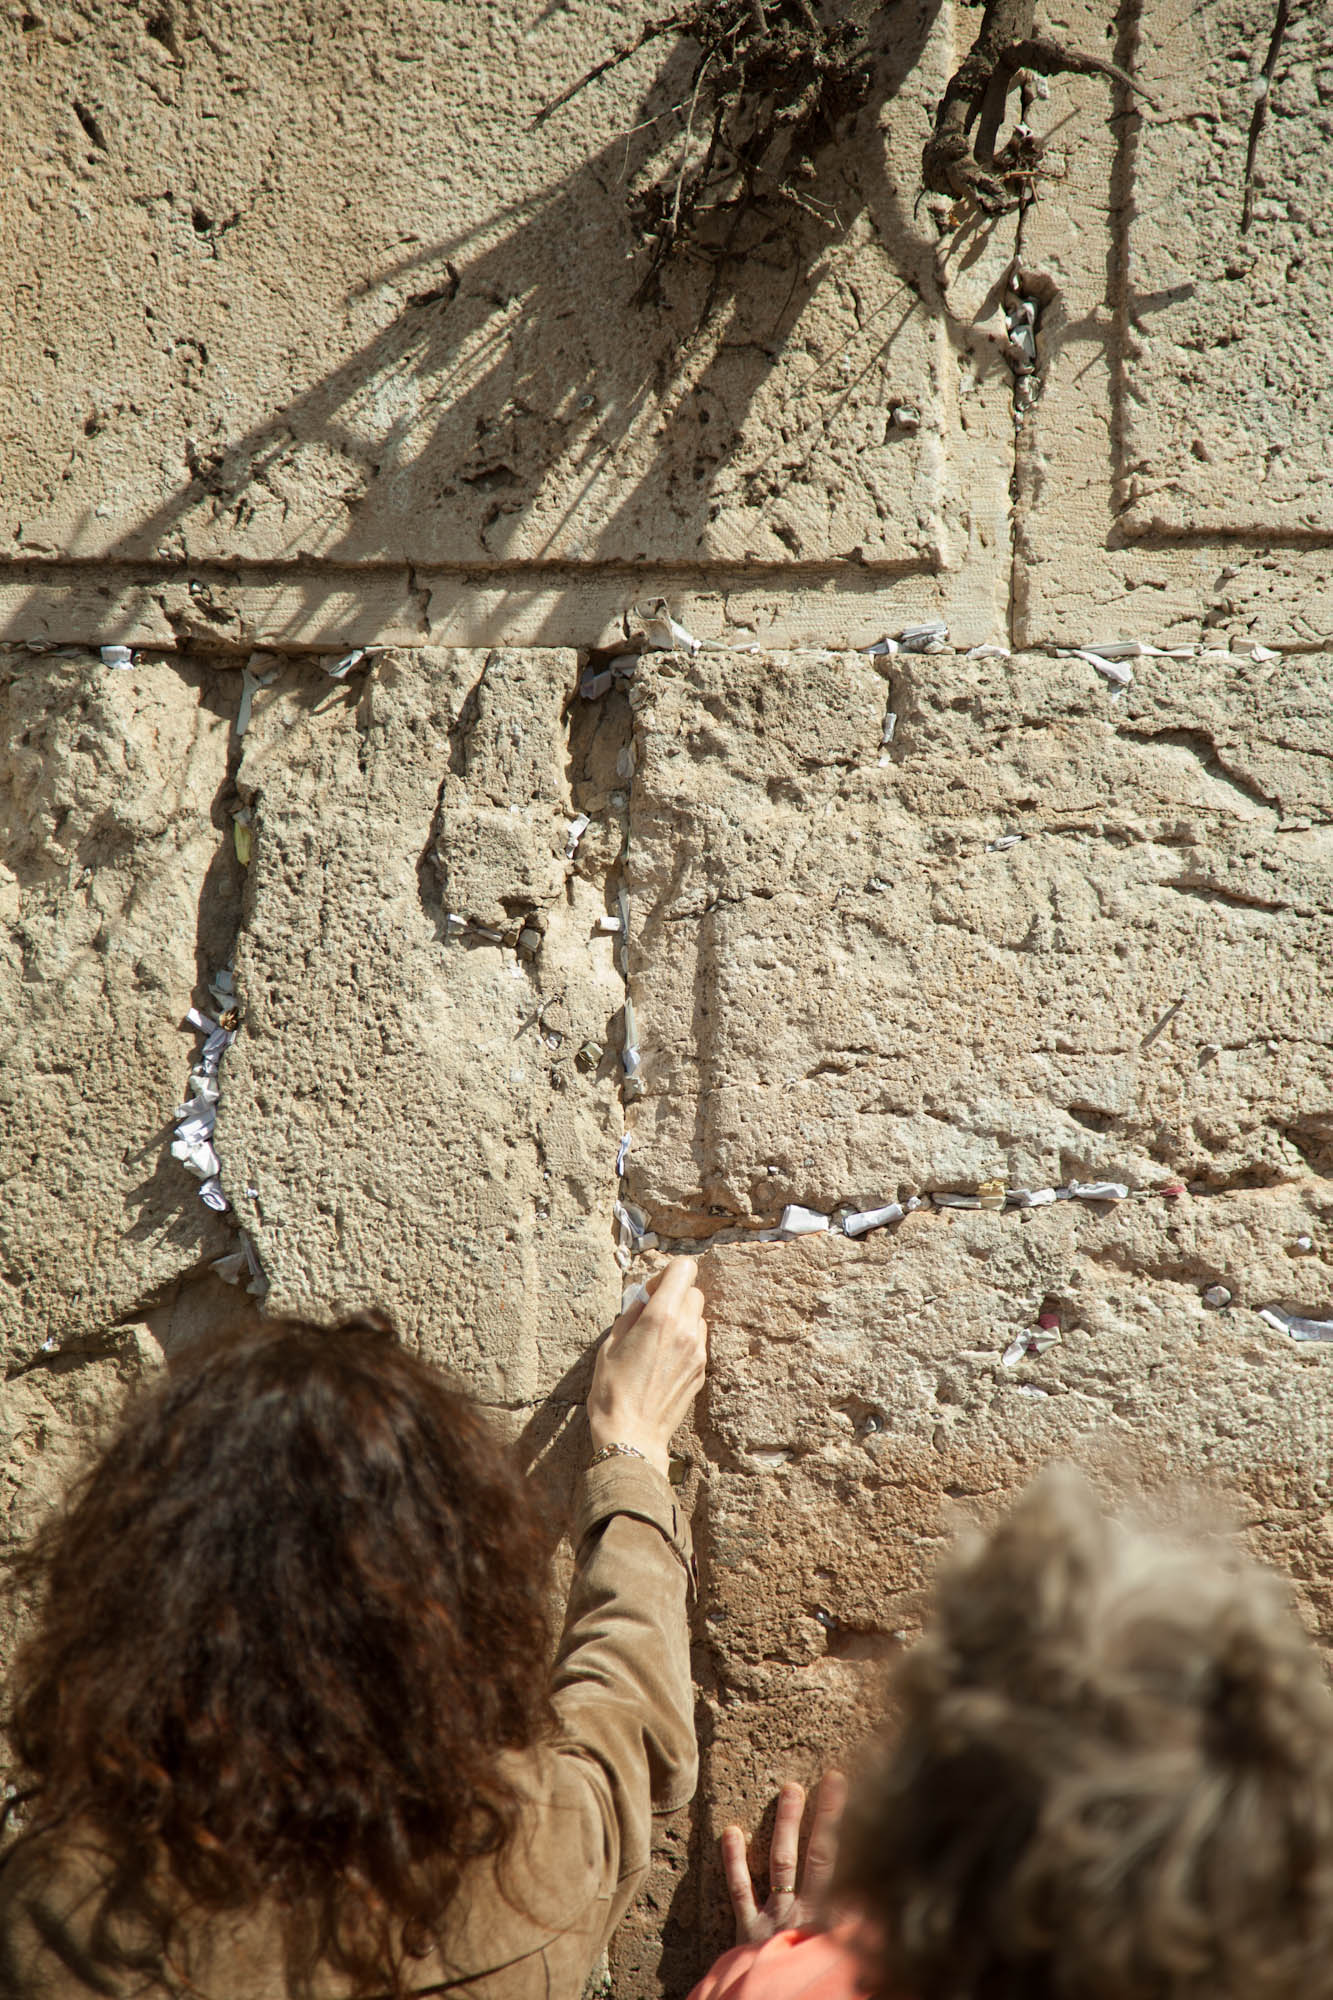 travel photography, wailing wall, western wall, Jerusalem, israel, palestine, documentary photography